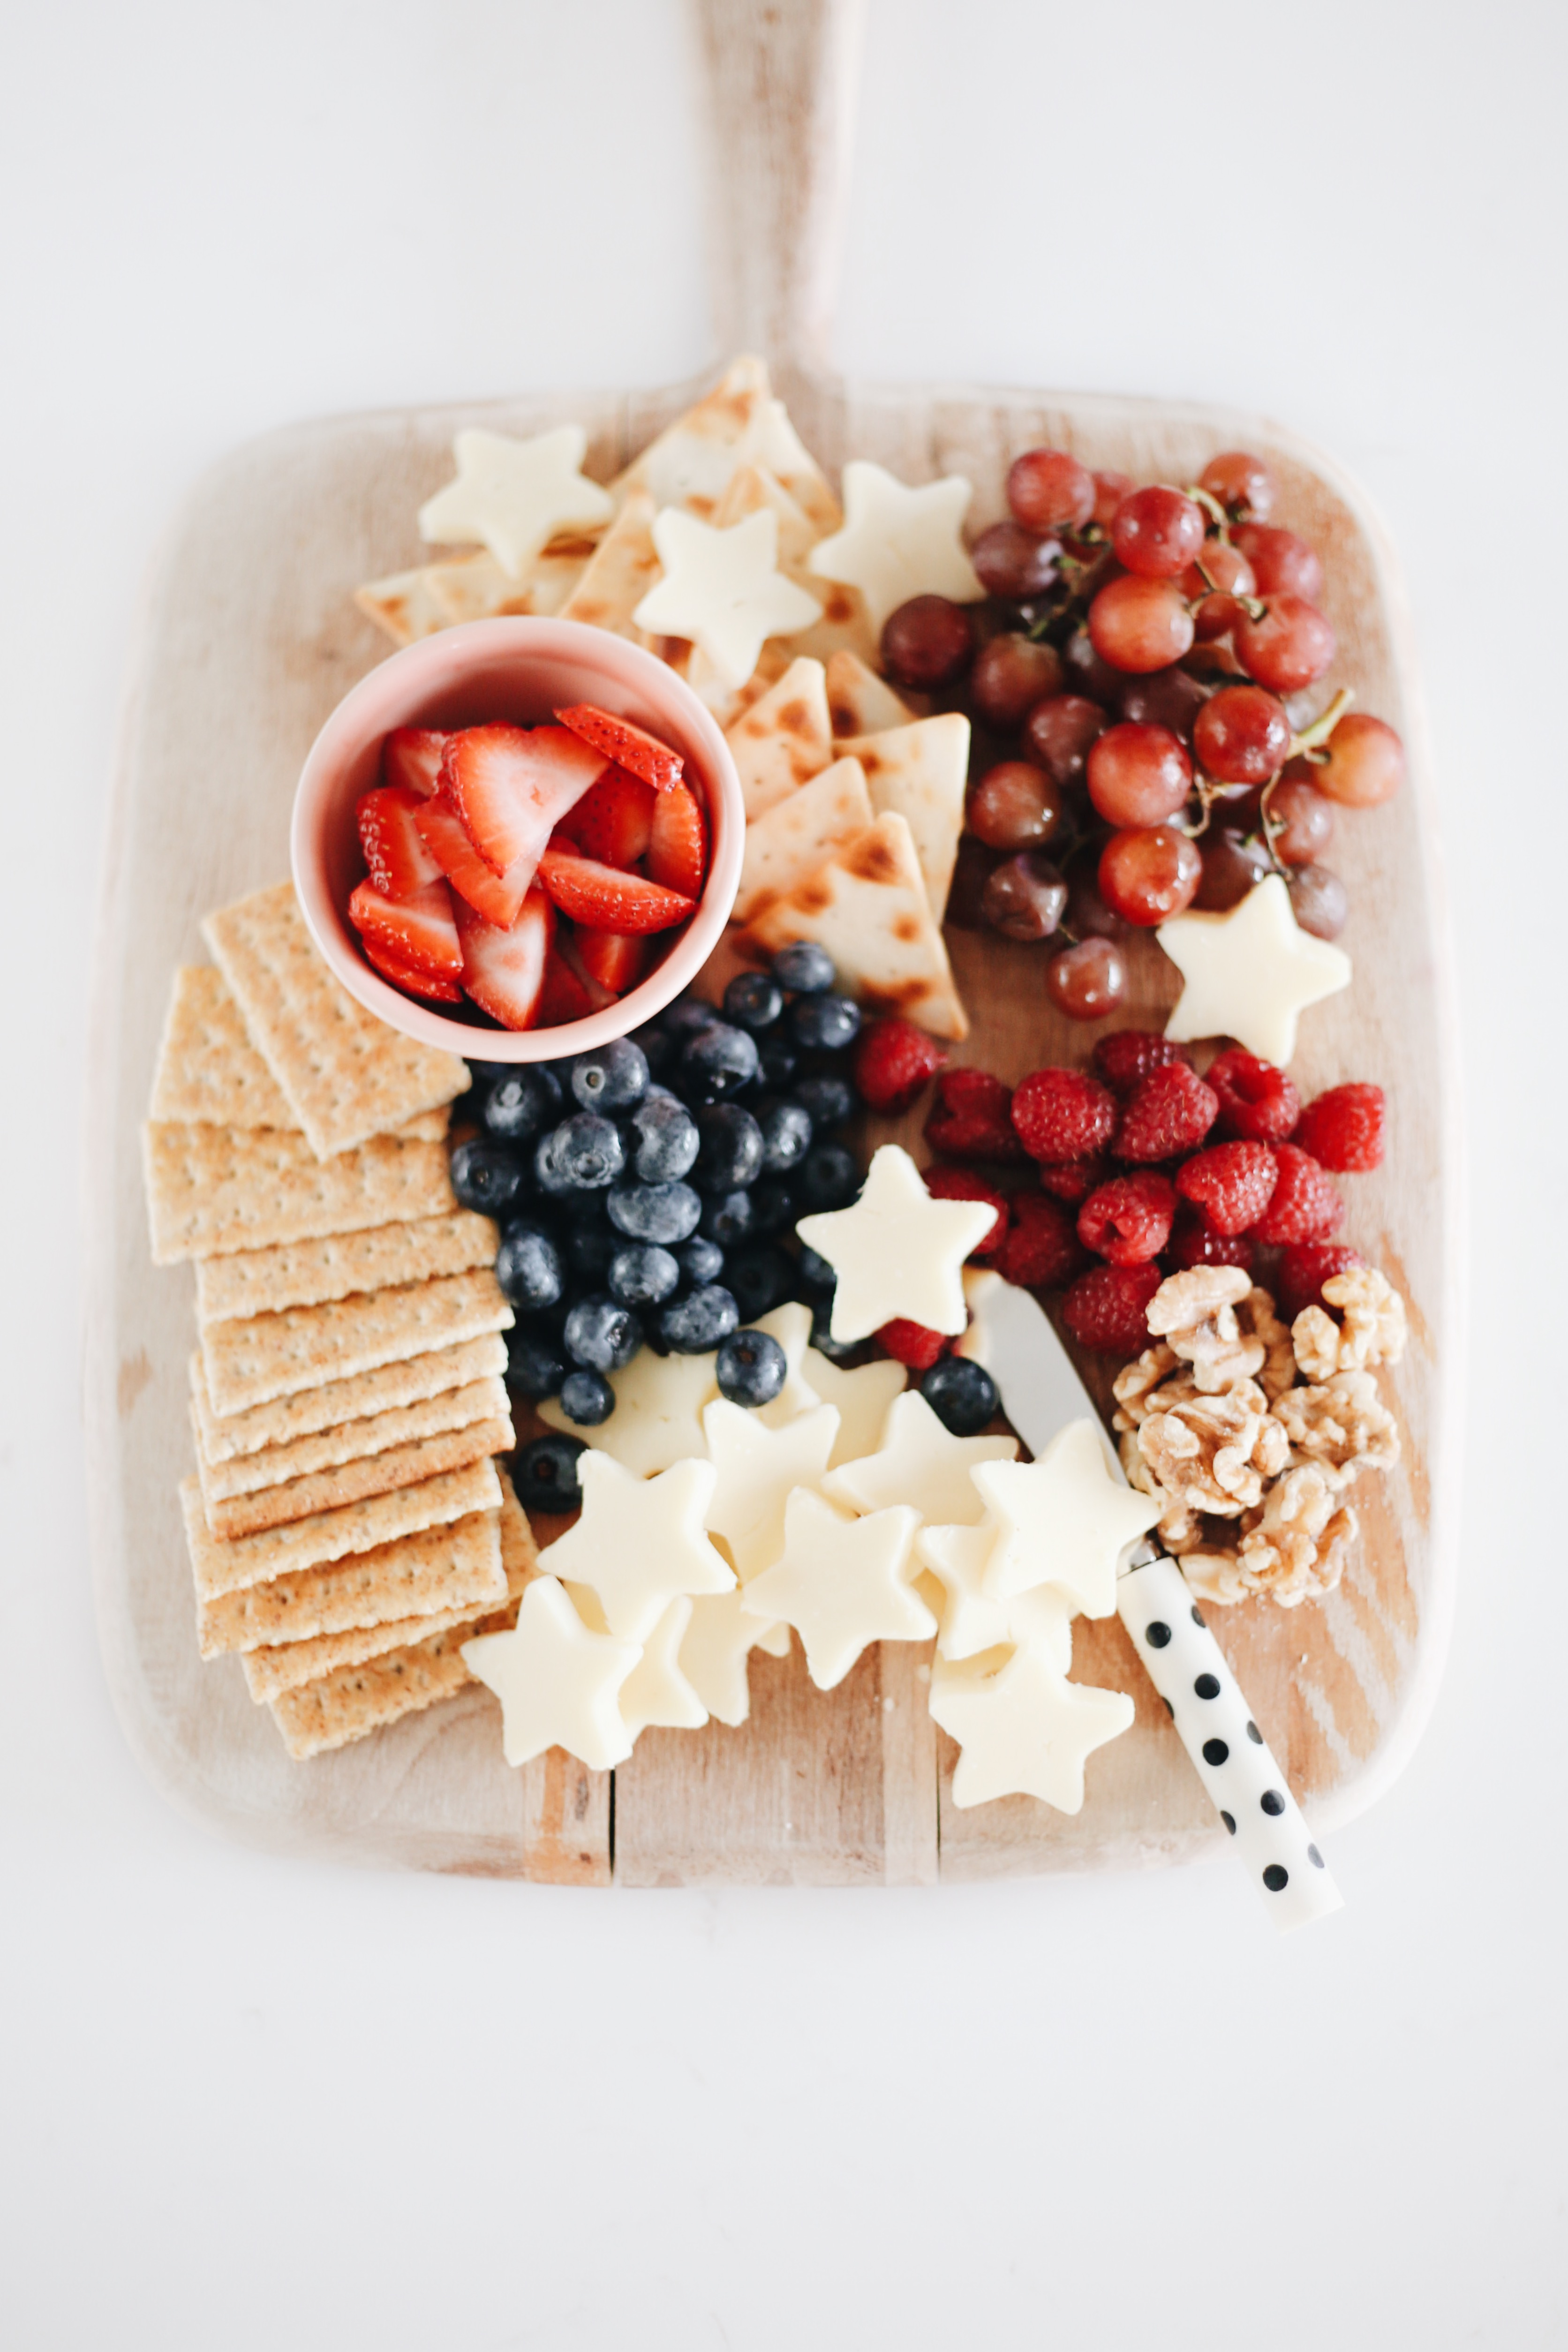 Patriotic Fruit and Cheese Tray | Patriotic Charcuterie Boards